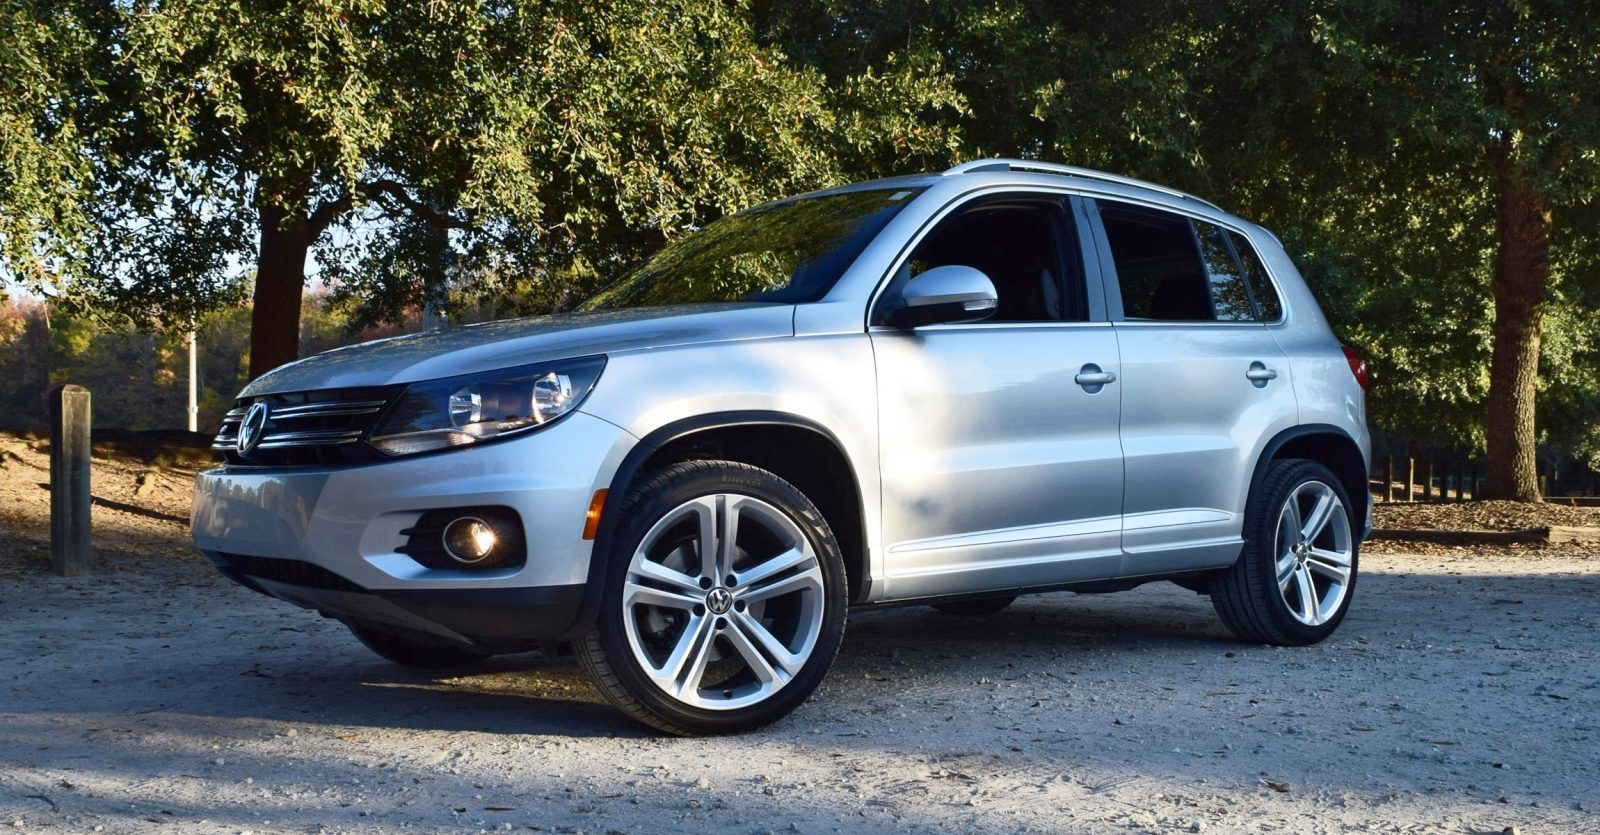 2016 vw tiguan r line review 25. Black Bedroom Furniture Sets. Home Design Ideas